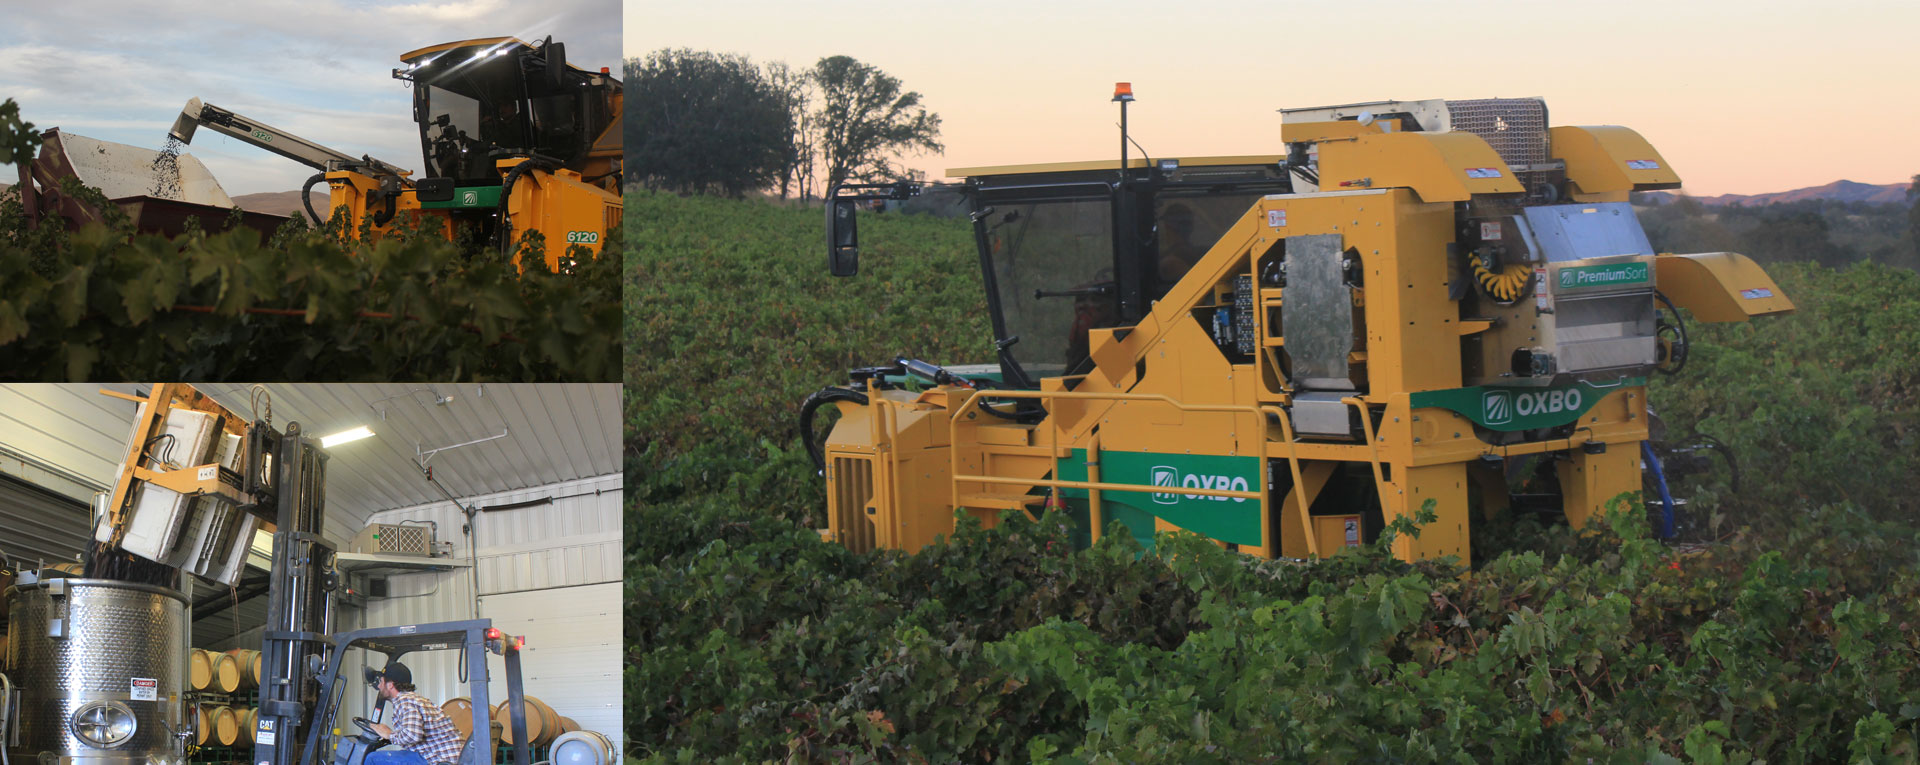 Oxbo International Corp Builds Equipment For Blueberries Citrus